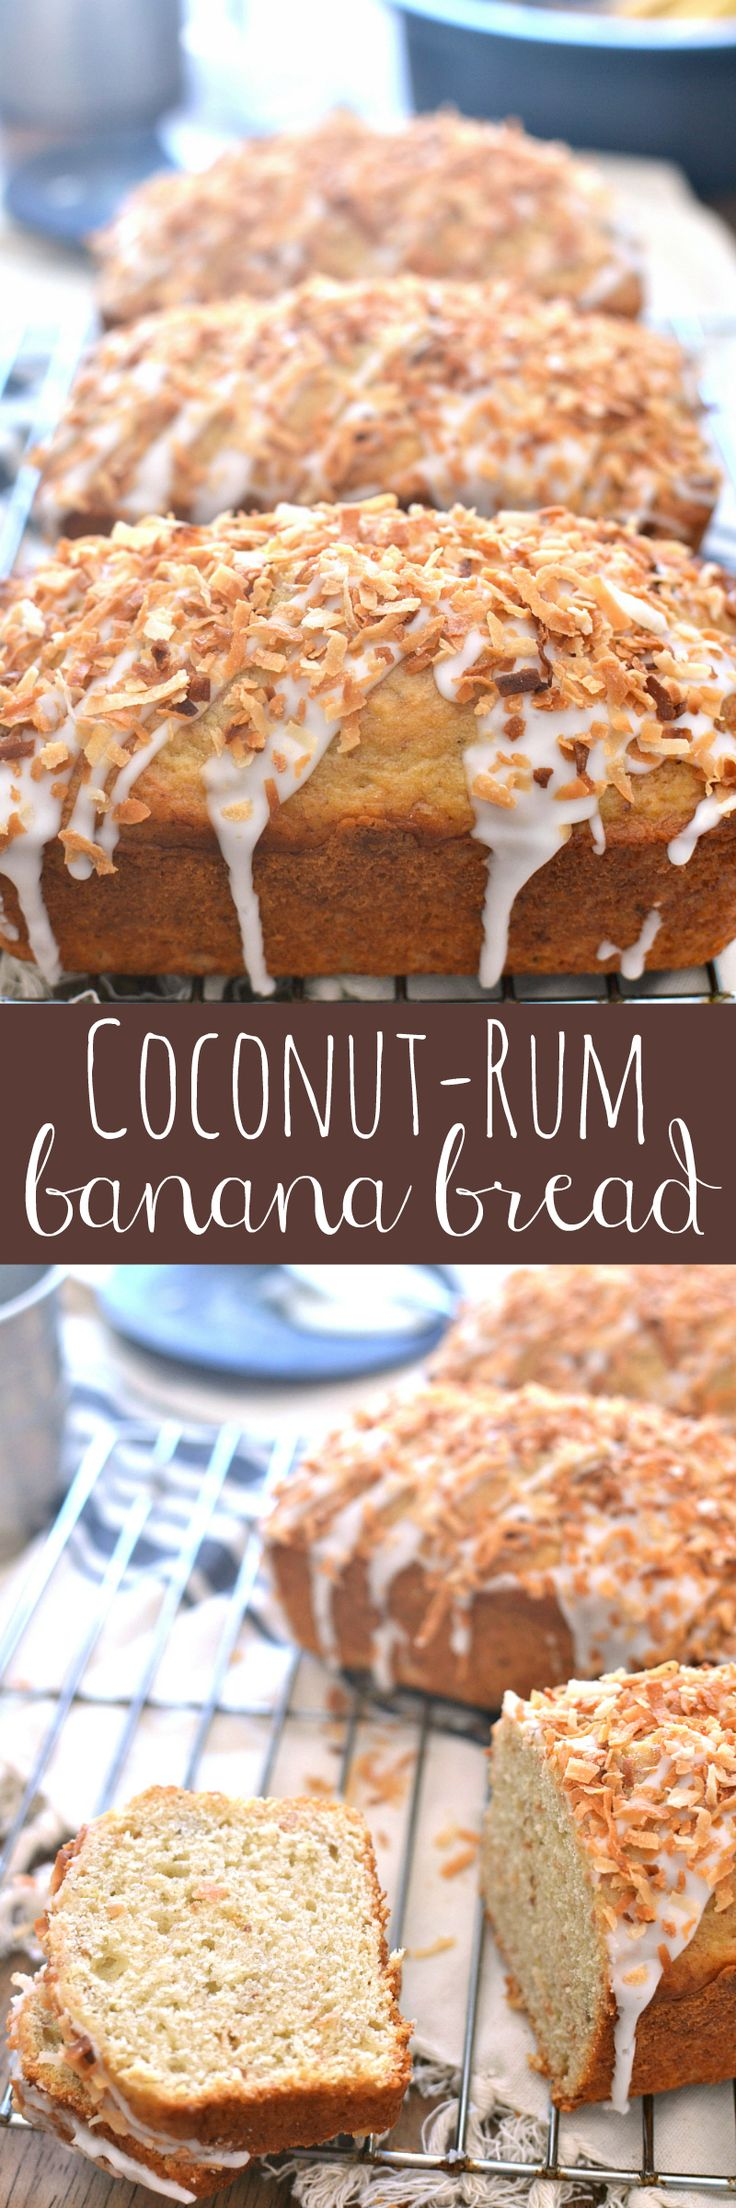 This Coconut-Rum Banana Bread starts with the BEST banana bread recipe and combines it with the delicious flavors of toasted coconut and real rum! A fun twist on a classic - perfect for breakfast, snack time, or even dessert!